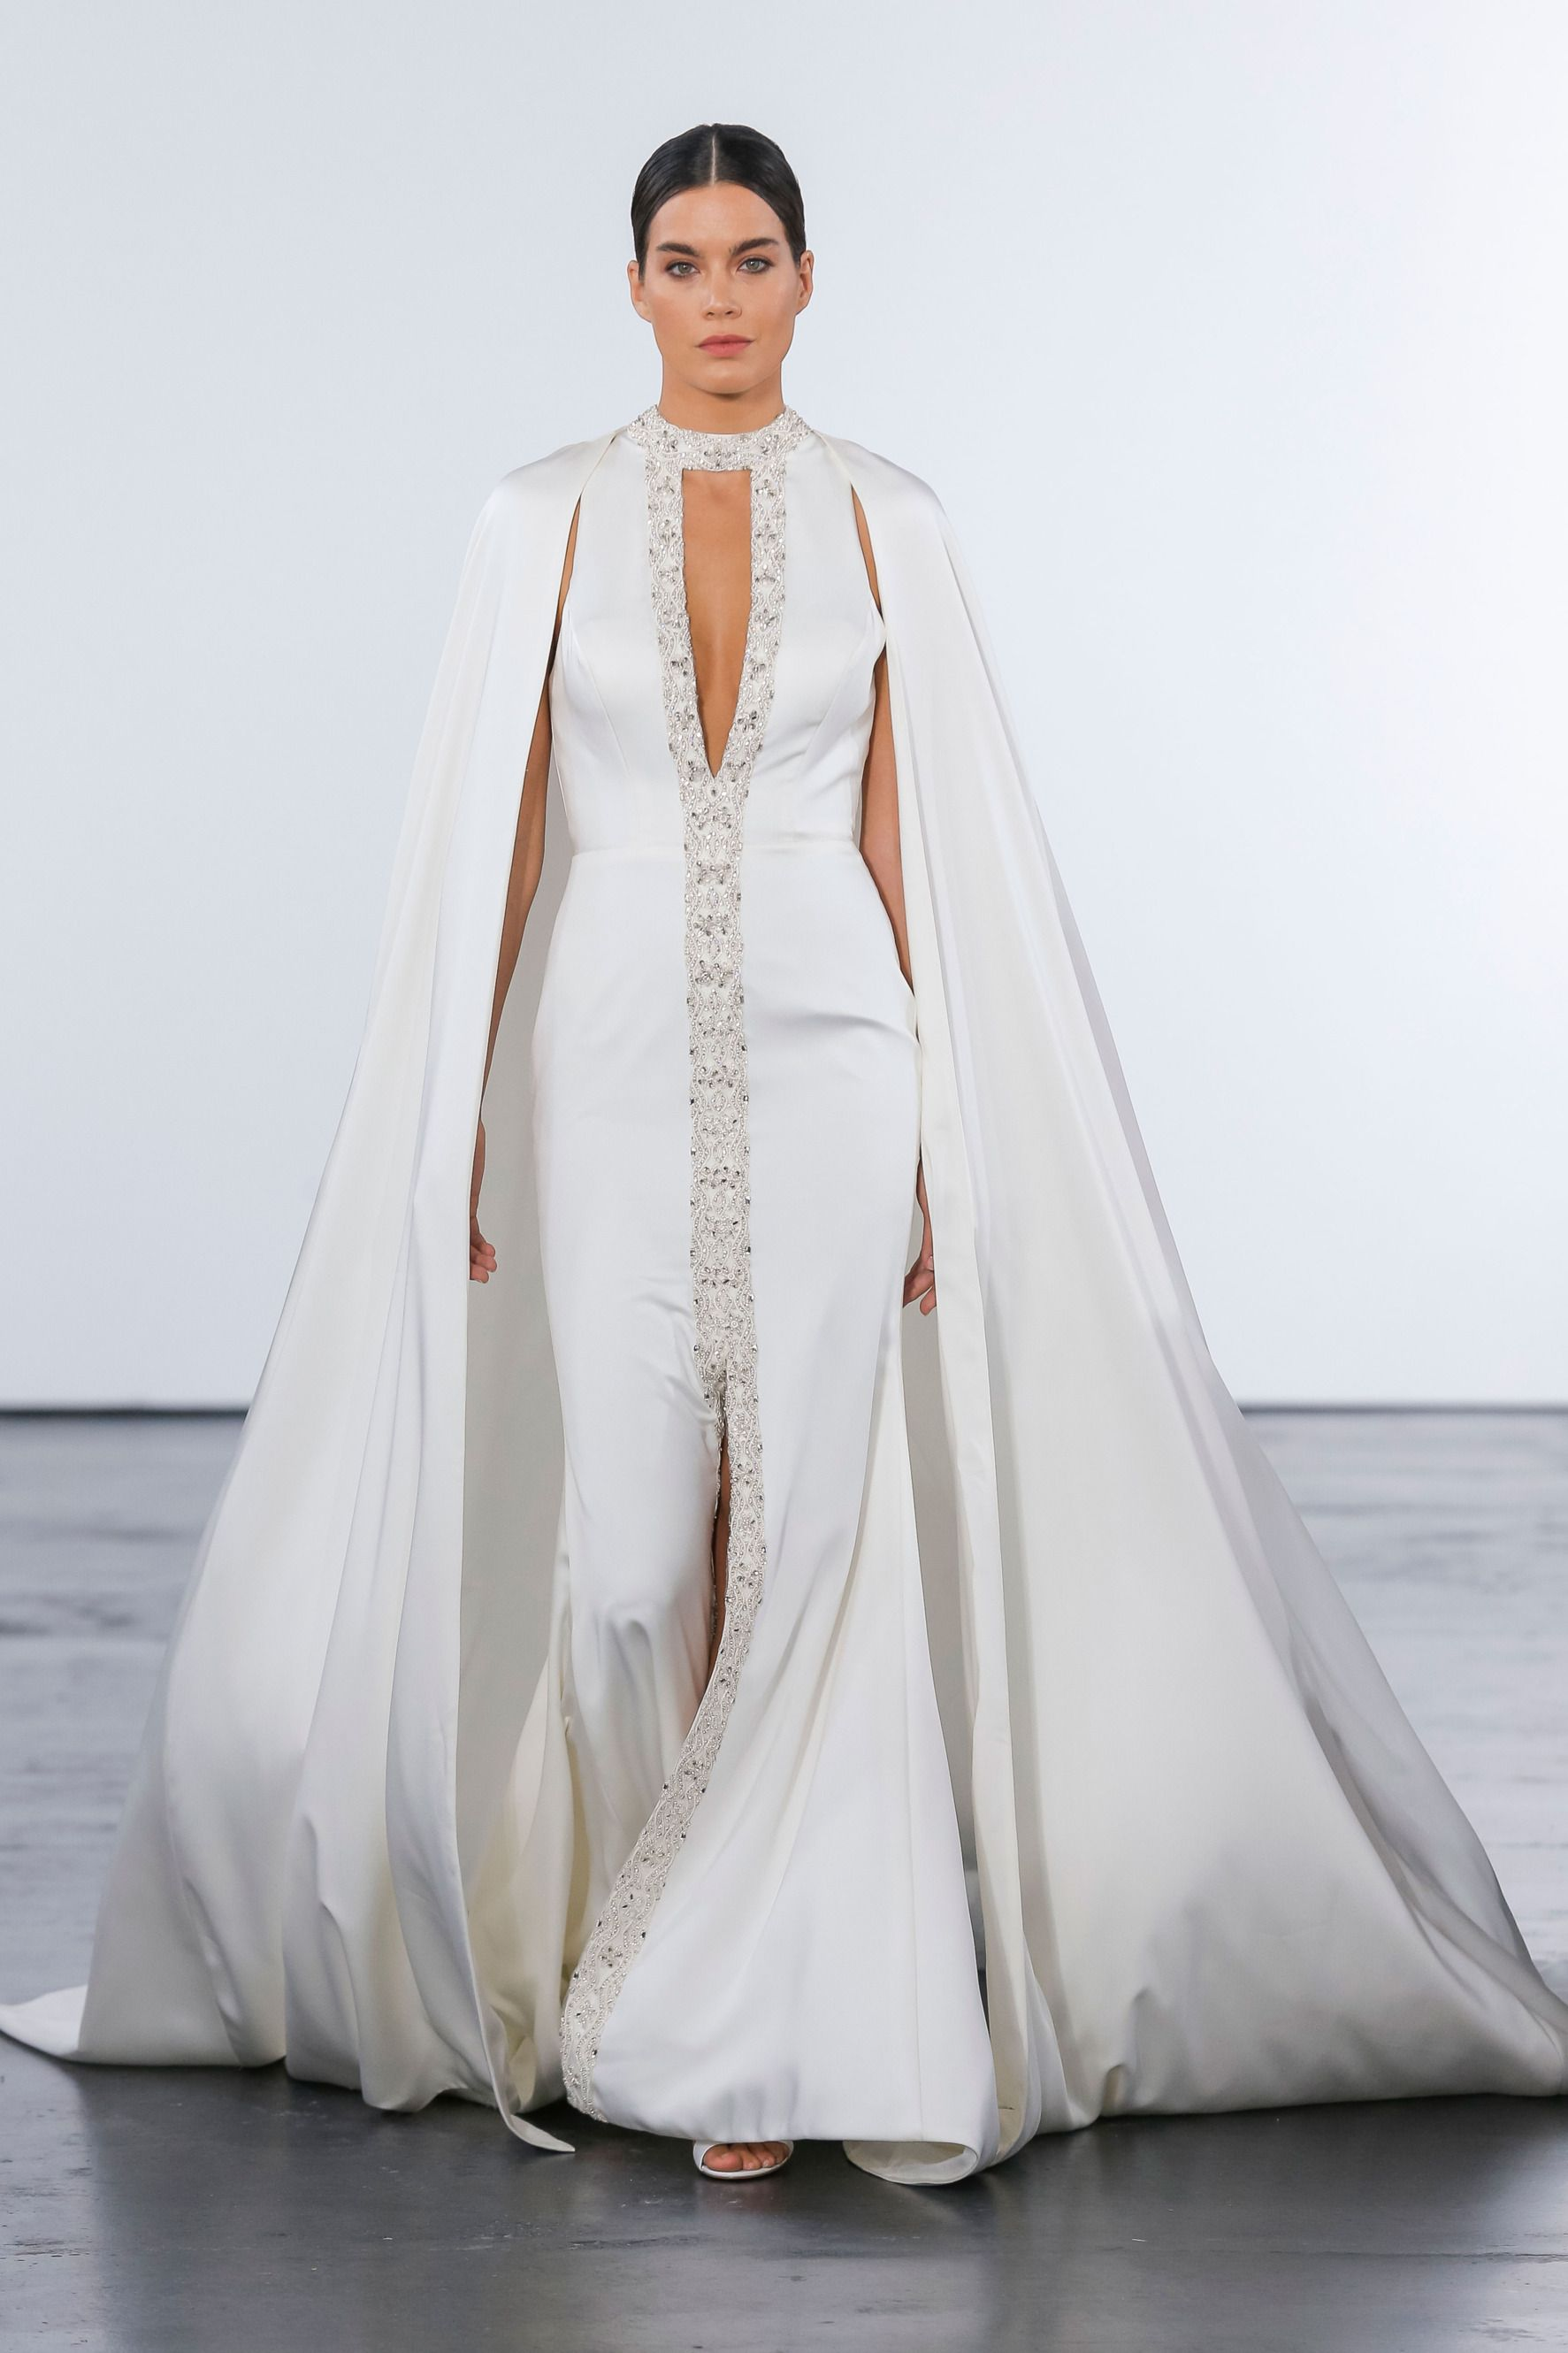 Dennis basso pinterest dennis basso and bridal collection